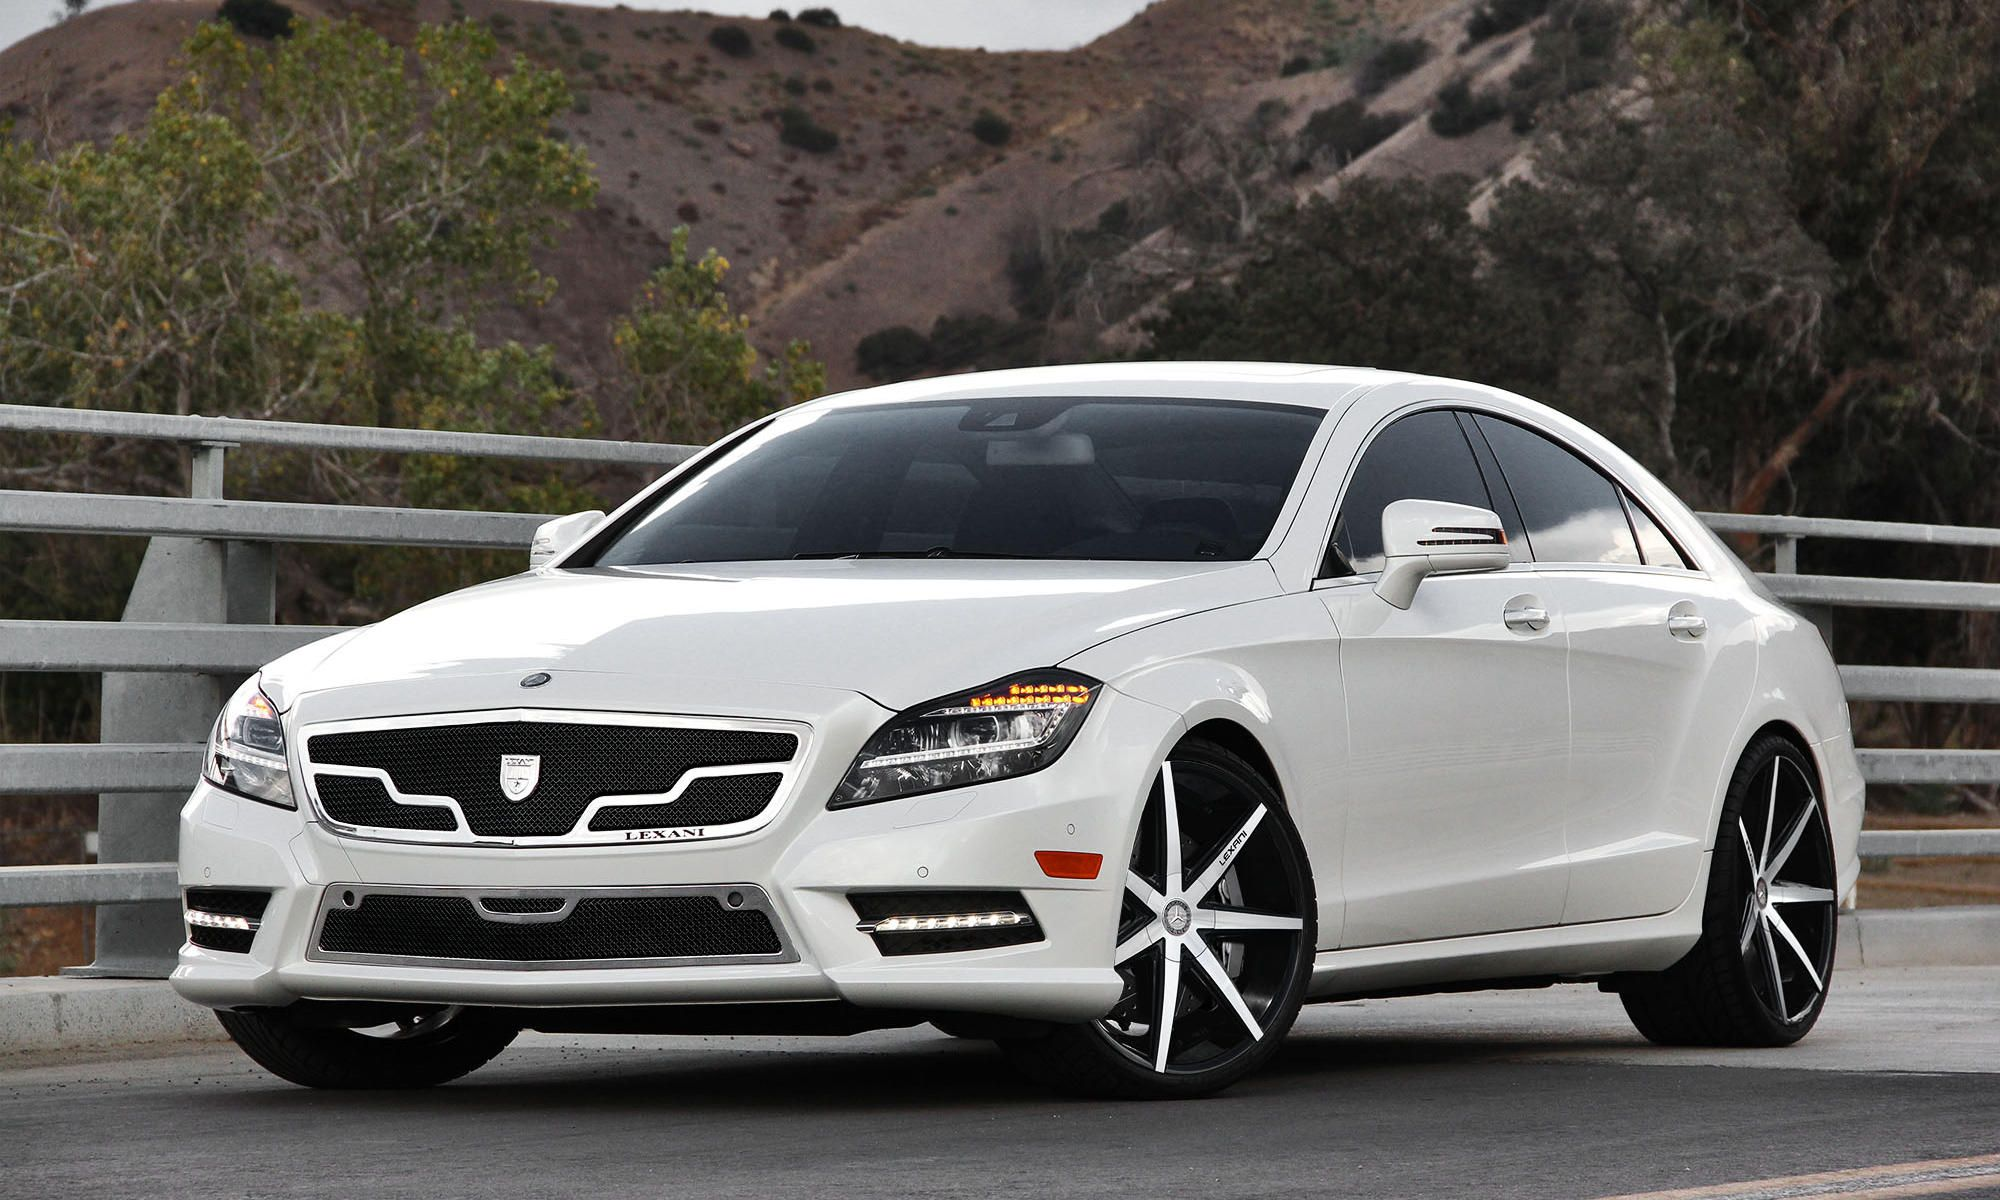 2013 white mercedes cls with gloss black machined and black lip lexani r seven wheels staggered 20 inch r seven rims front and rear - White Mercedes Suv 2013